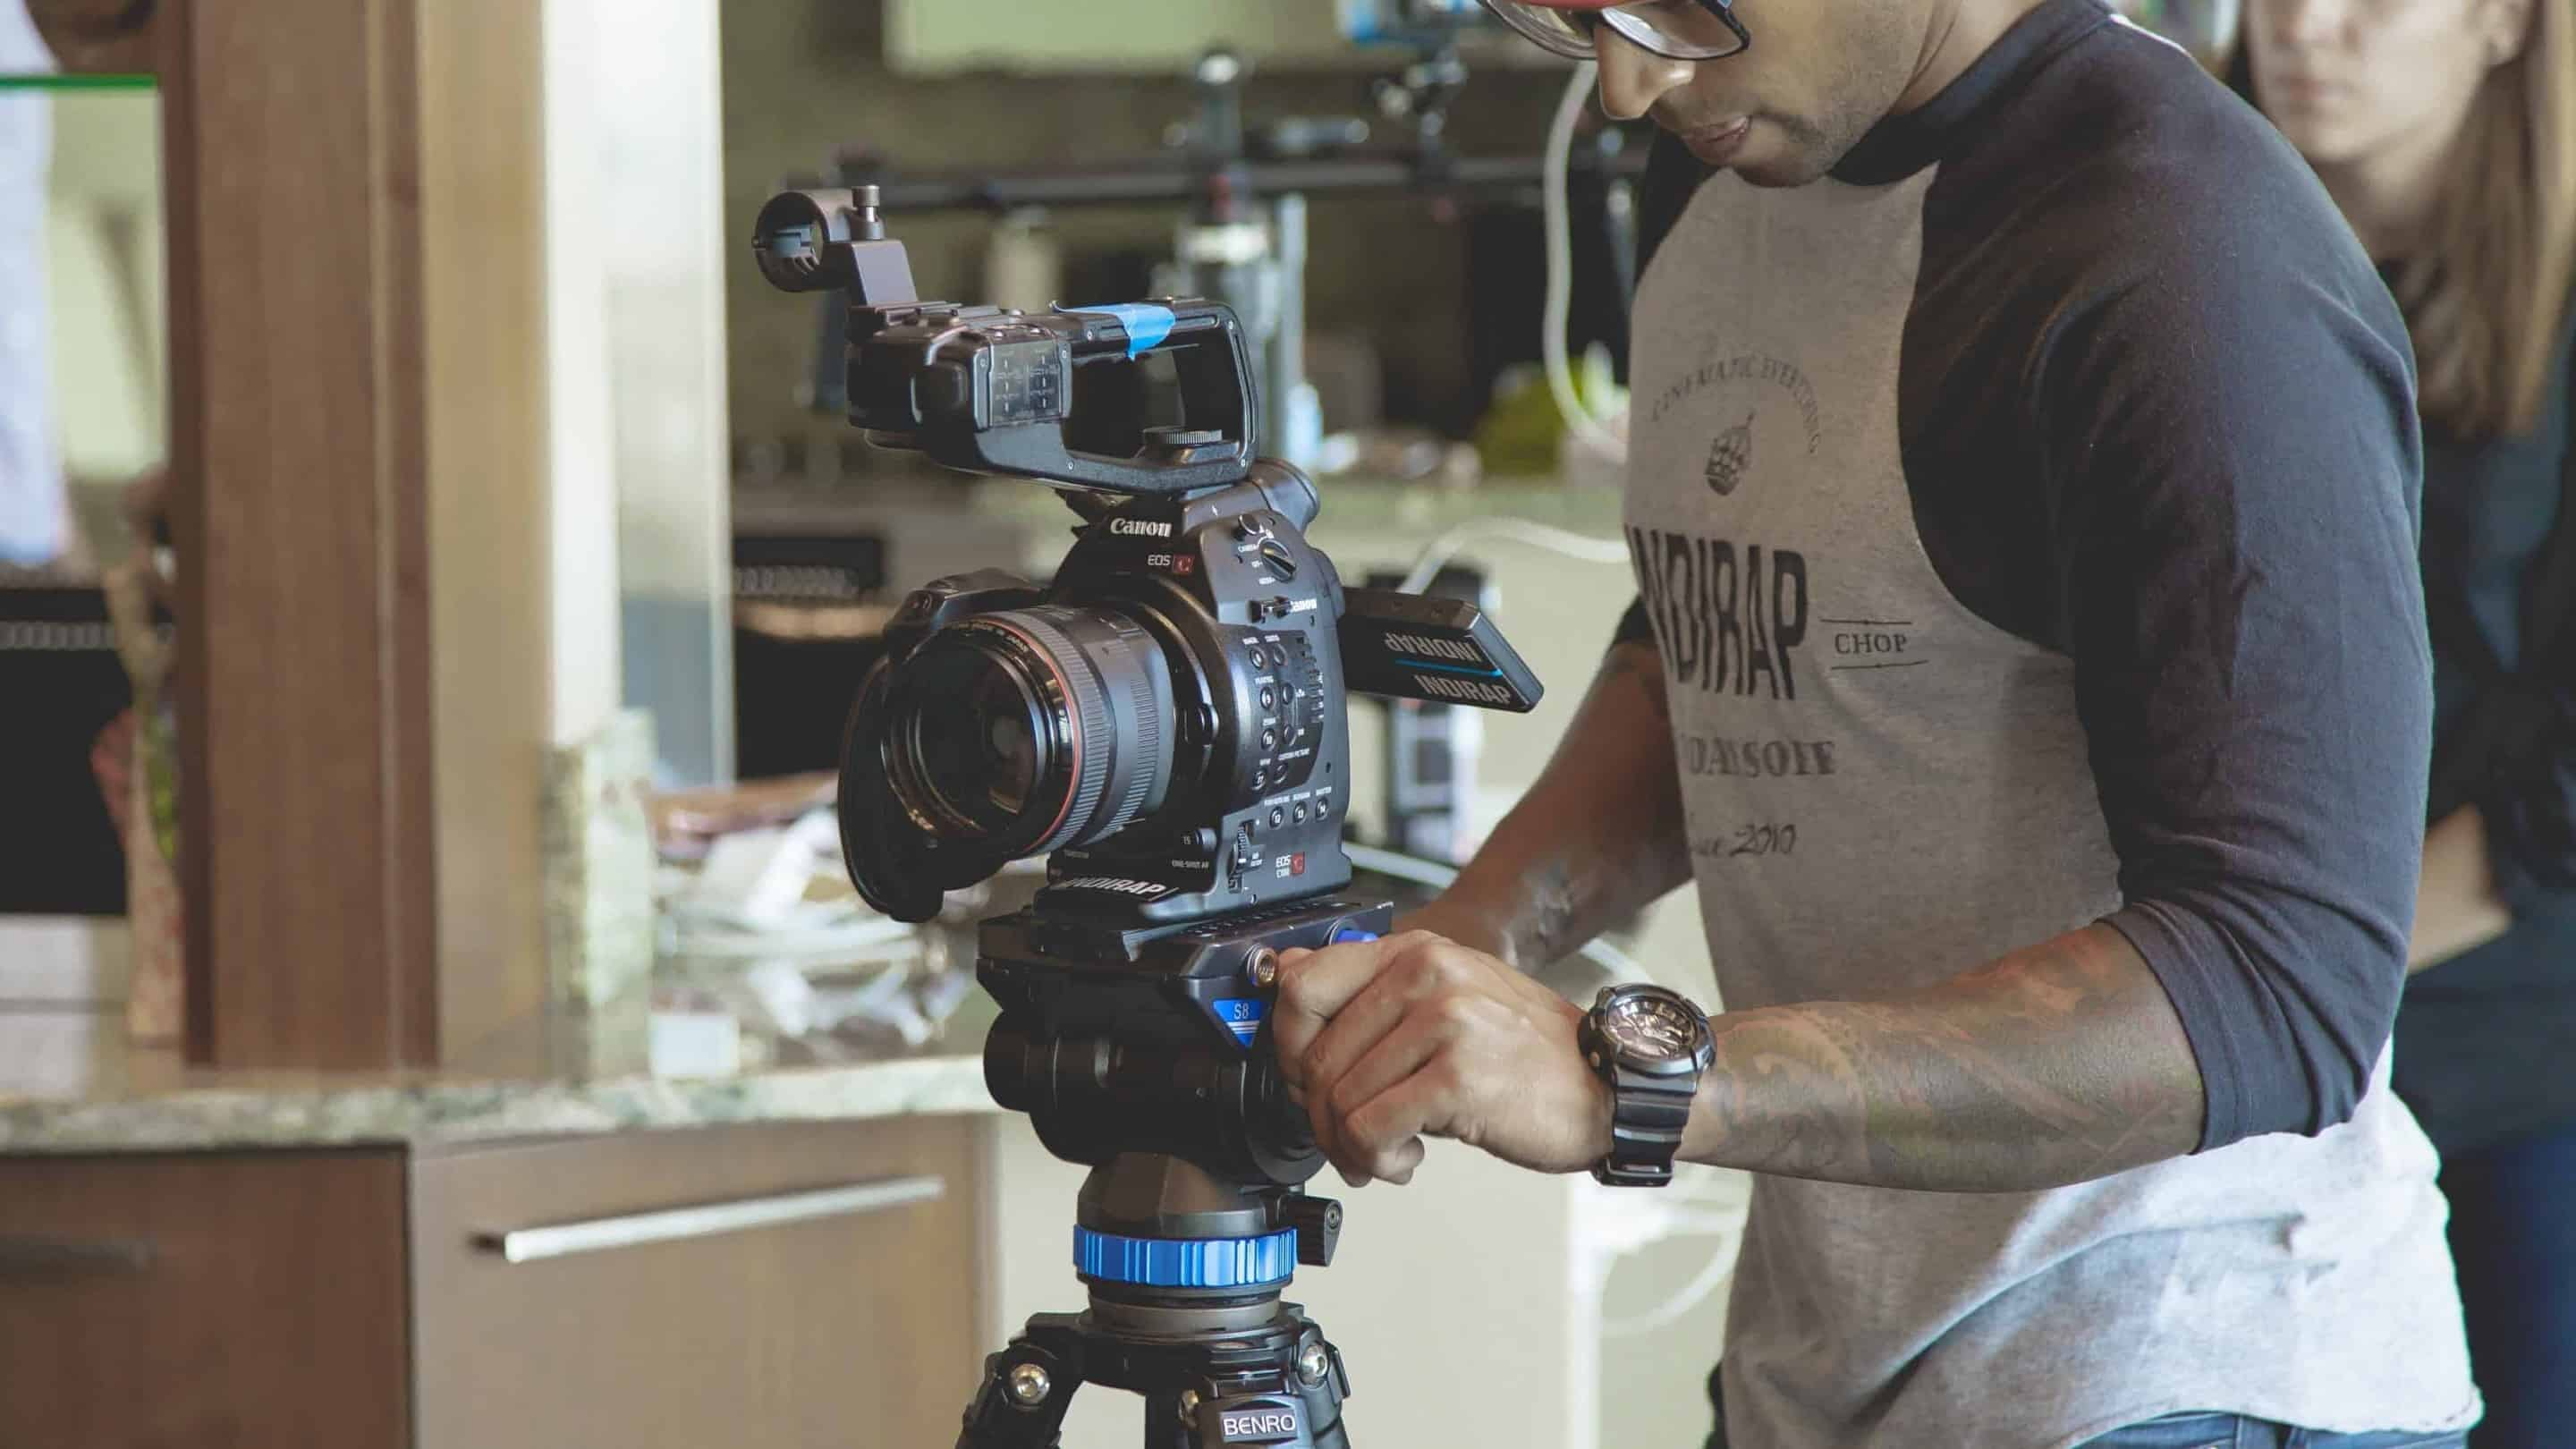 The Best Cameras for Product Photography (Top 10 Picks Compared)